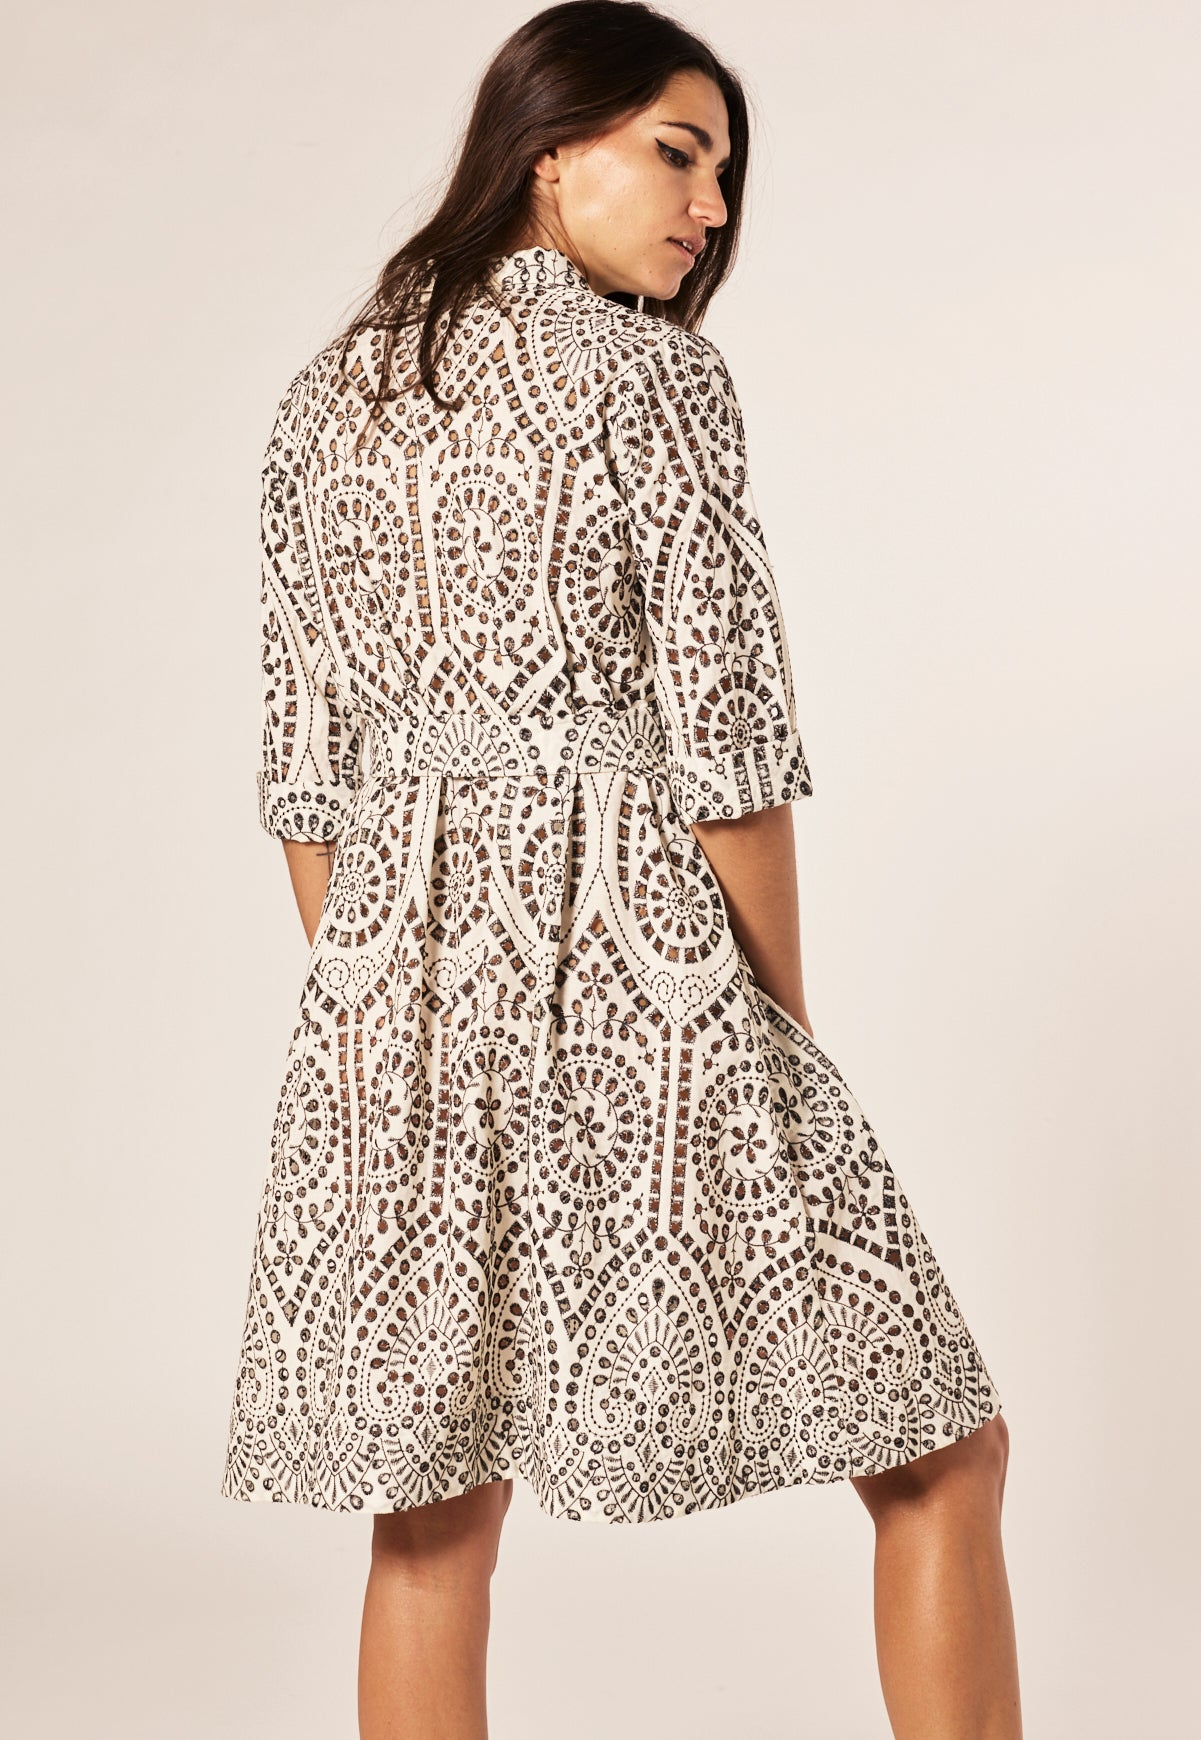 NATURAL/BLACK EYELET MINI SHIRT DRESS